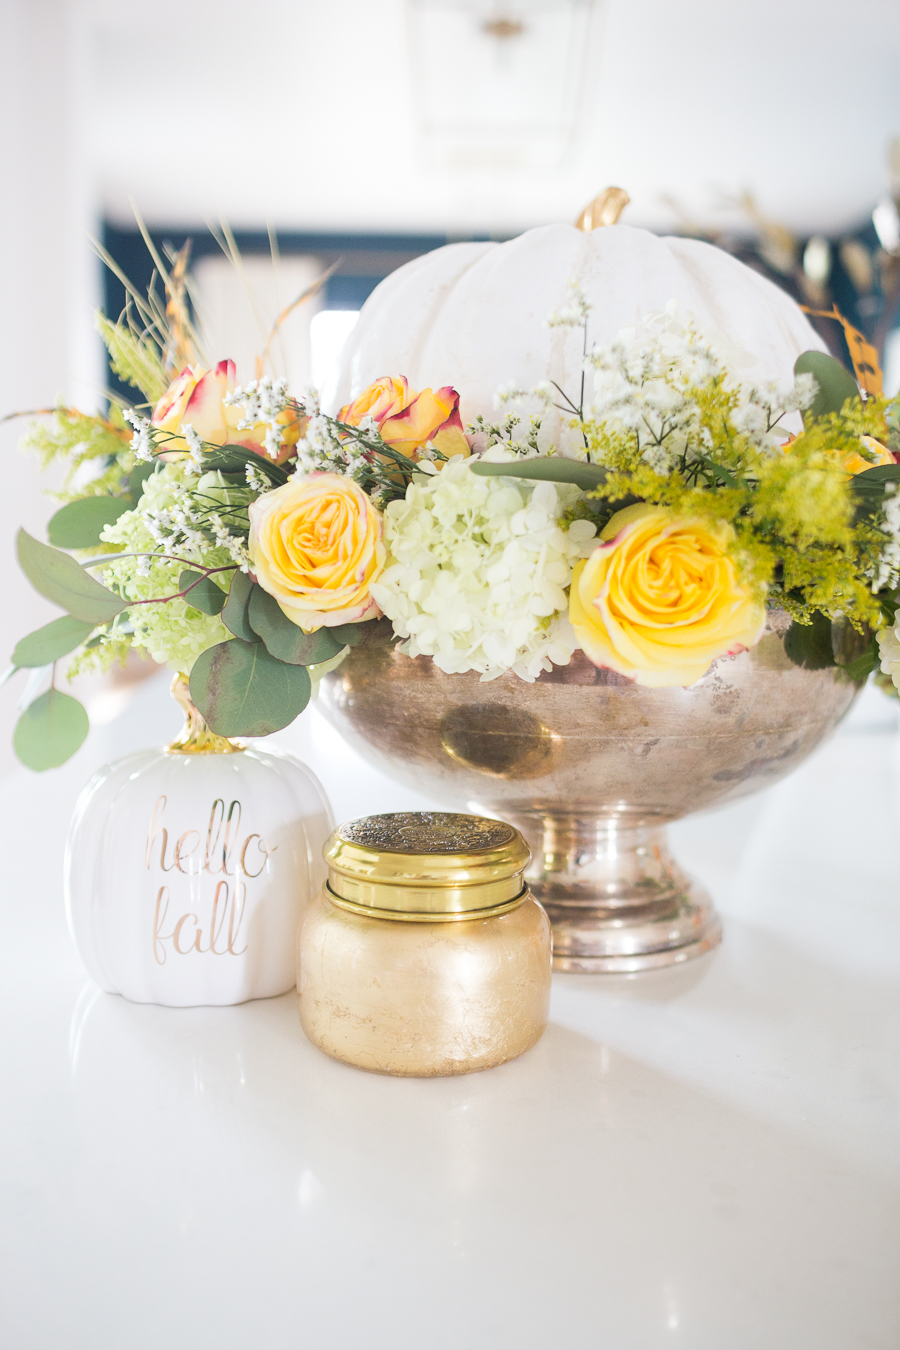 DIY Silver Urn Pumpkin Centerpiece for Fall hydrangeas and eucalyptus and roses inside of a silver urn with a ceramic pumpkin for a Thanksgiving centerpiece sitting beside a fall Anthropologie candle and hello fall pumpkin